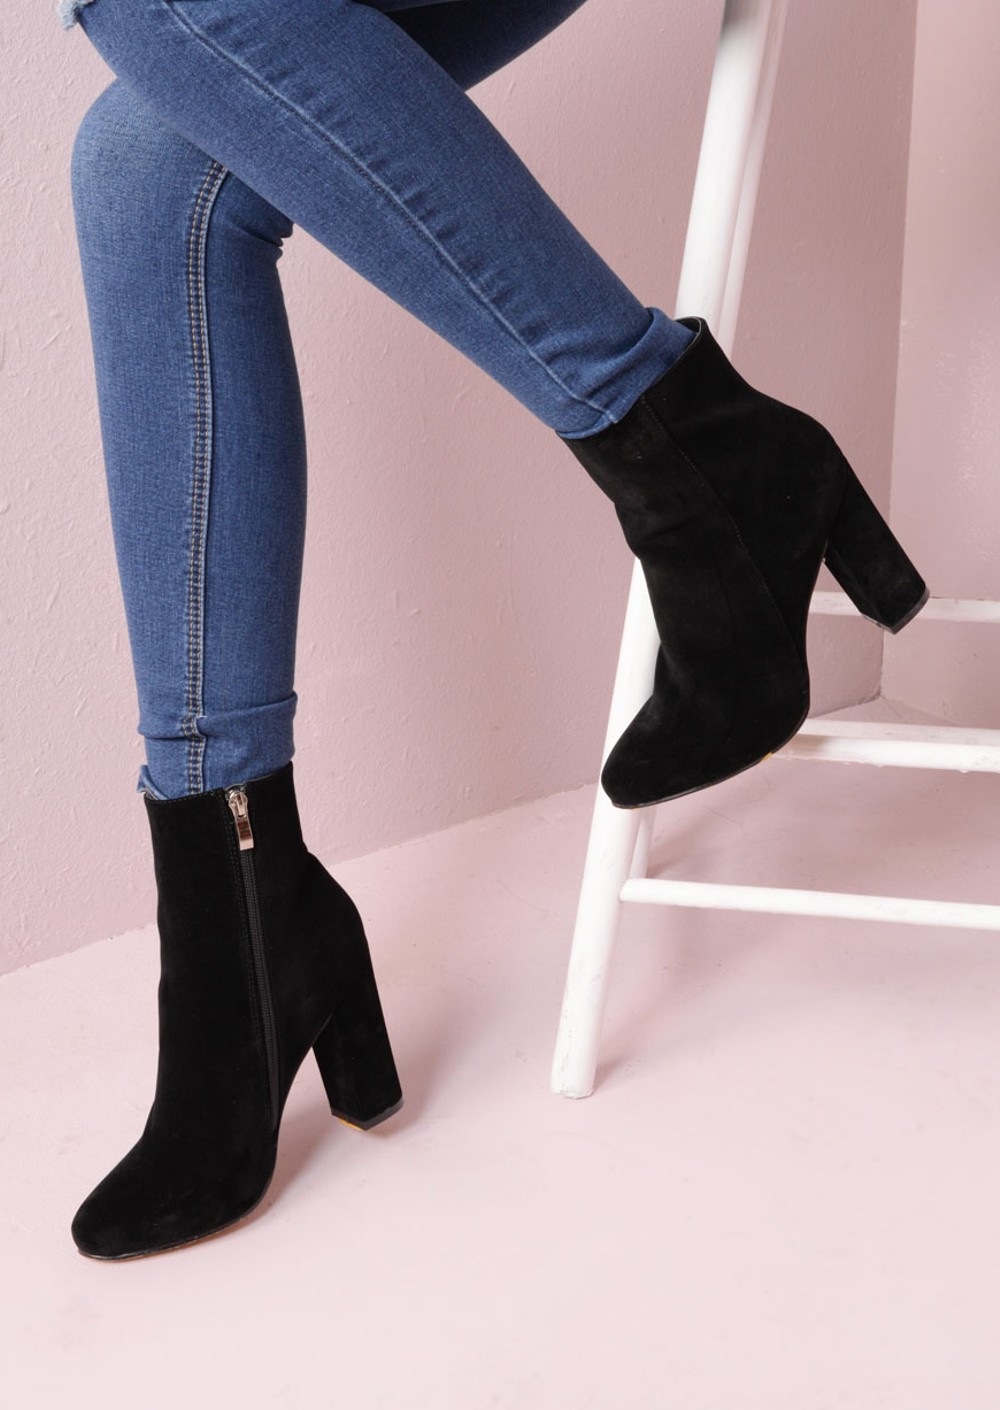 Free shipping on women's booties at senonsdownload-gv.cf Shop all types of ankle boots, chelsea boots, and short boots for women from the best brands including Steve Madden, Sam Edelman, Vince Camuto and more. Totally free shipping & returns.